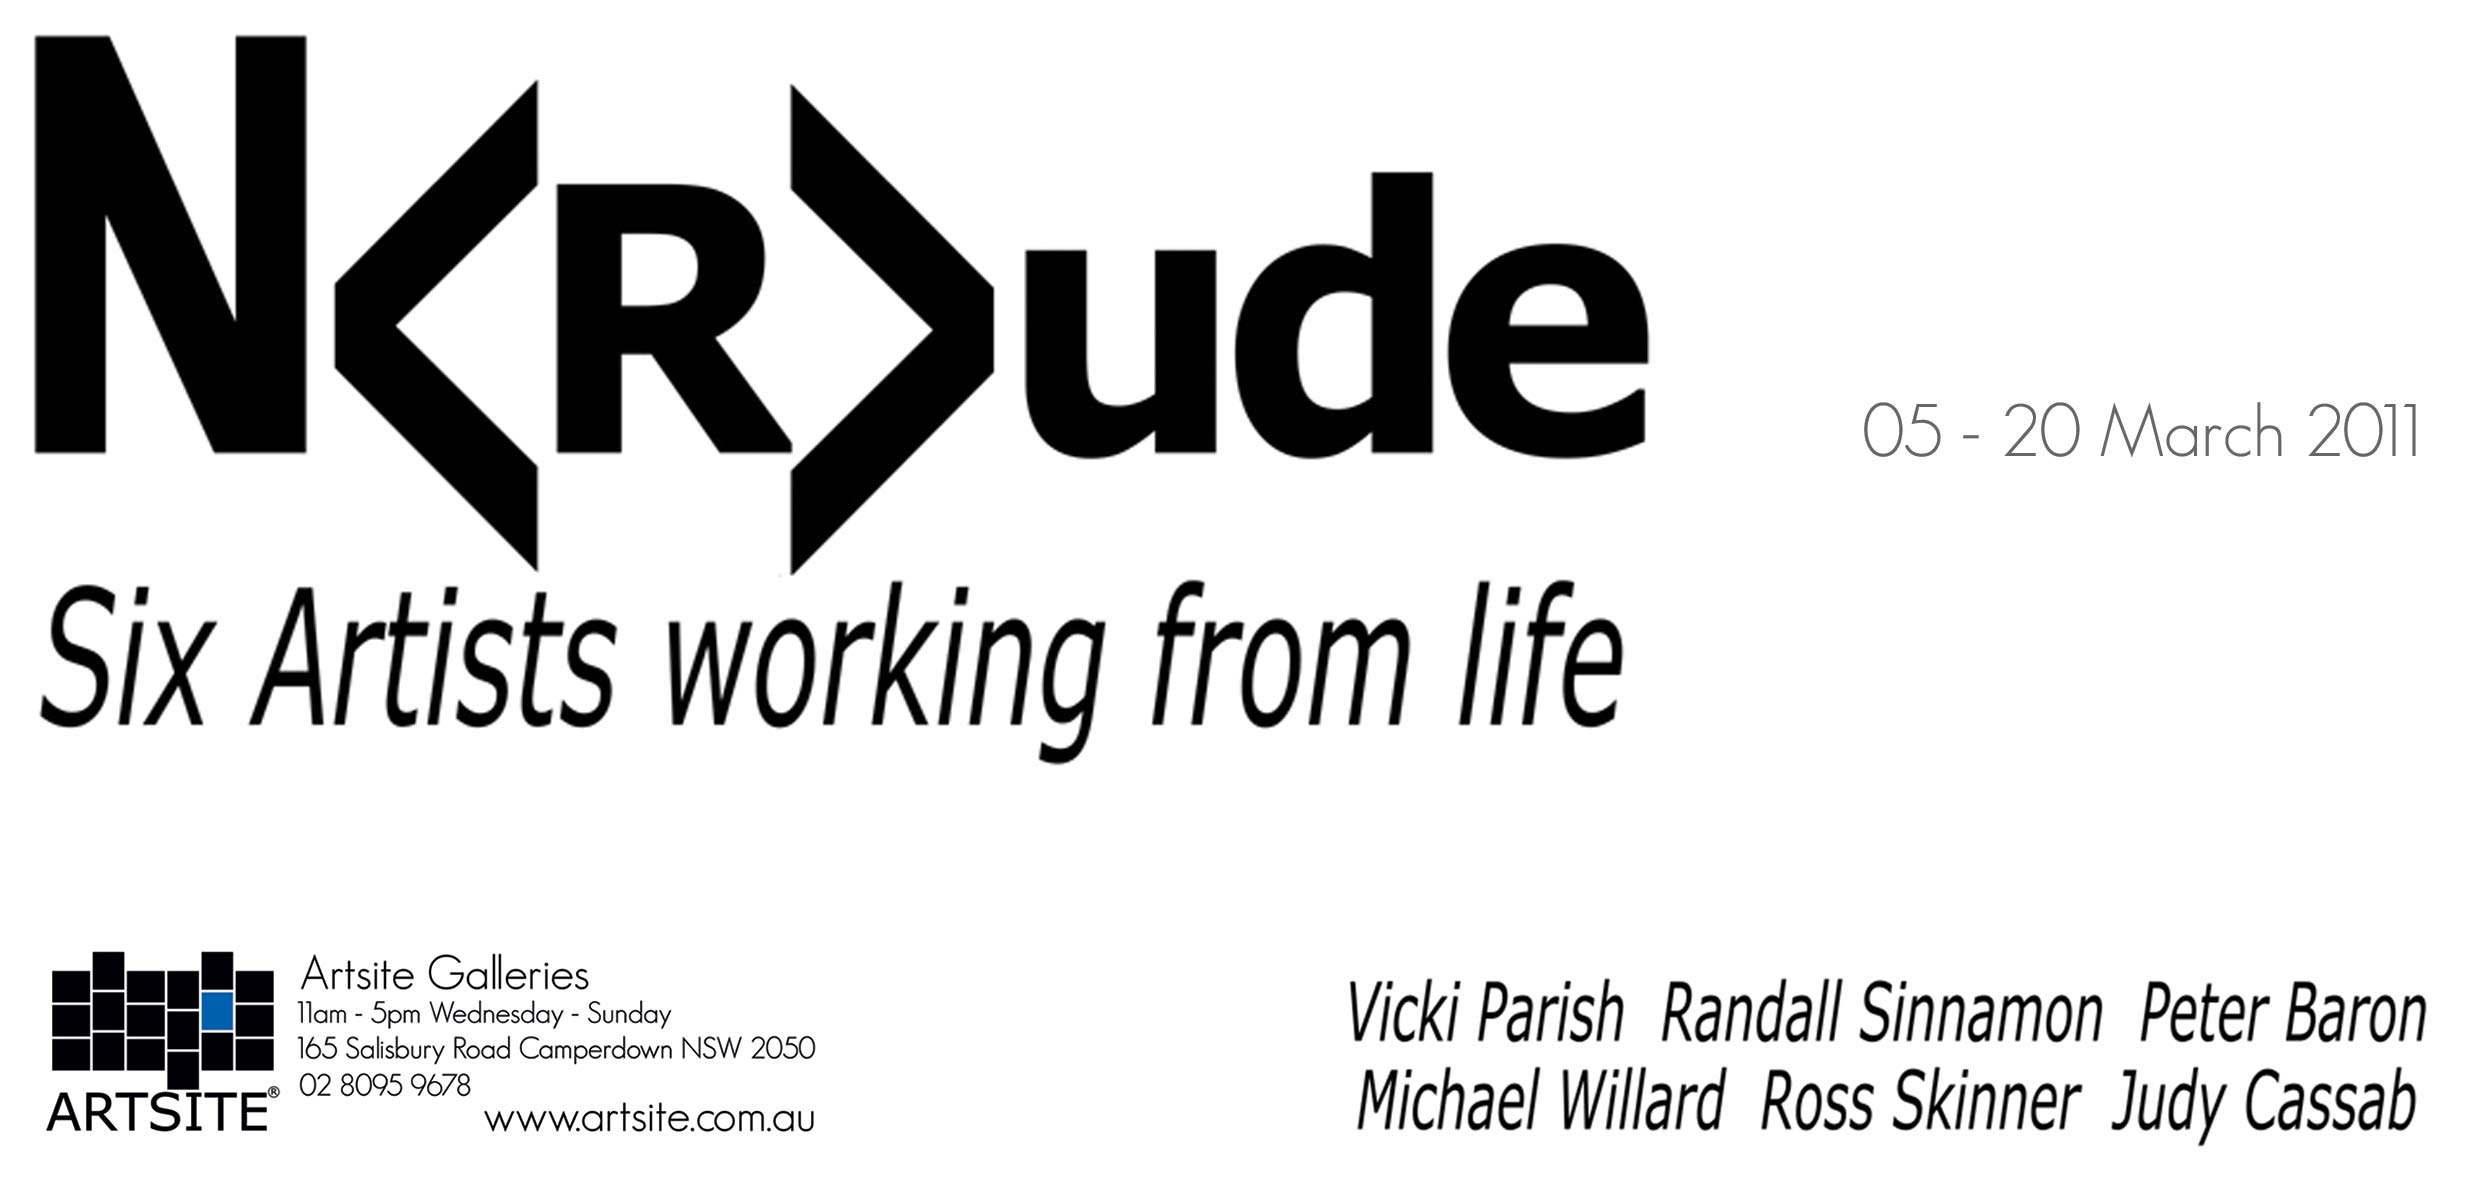 View Exhibition at Artsite Gallery, 05 - 20 March 2011: N<R>ude - Six Artists Working from Life: Michael Willard, Ross Skinner, Judy Cassab, Vicki Parish, Randall Sinnamon, Peter Baron